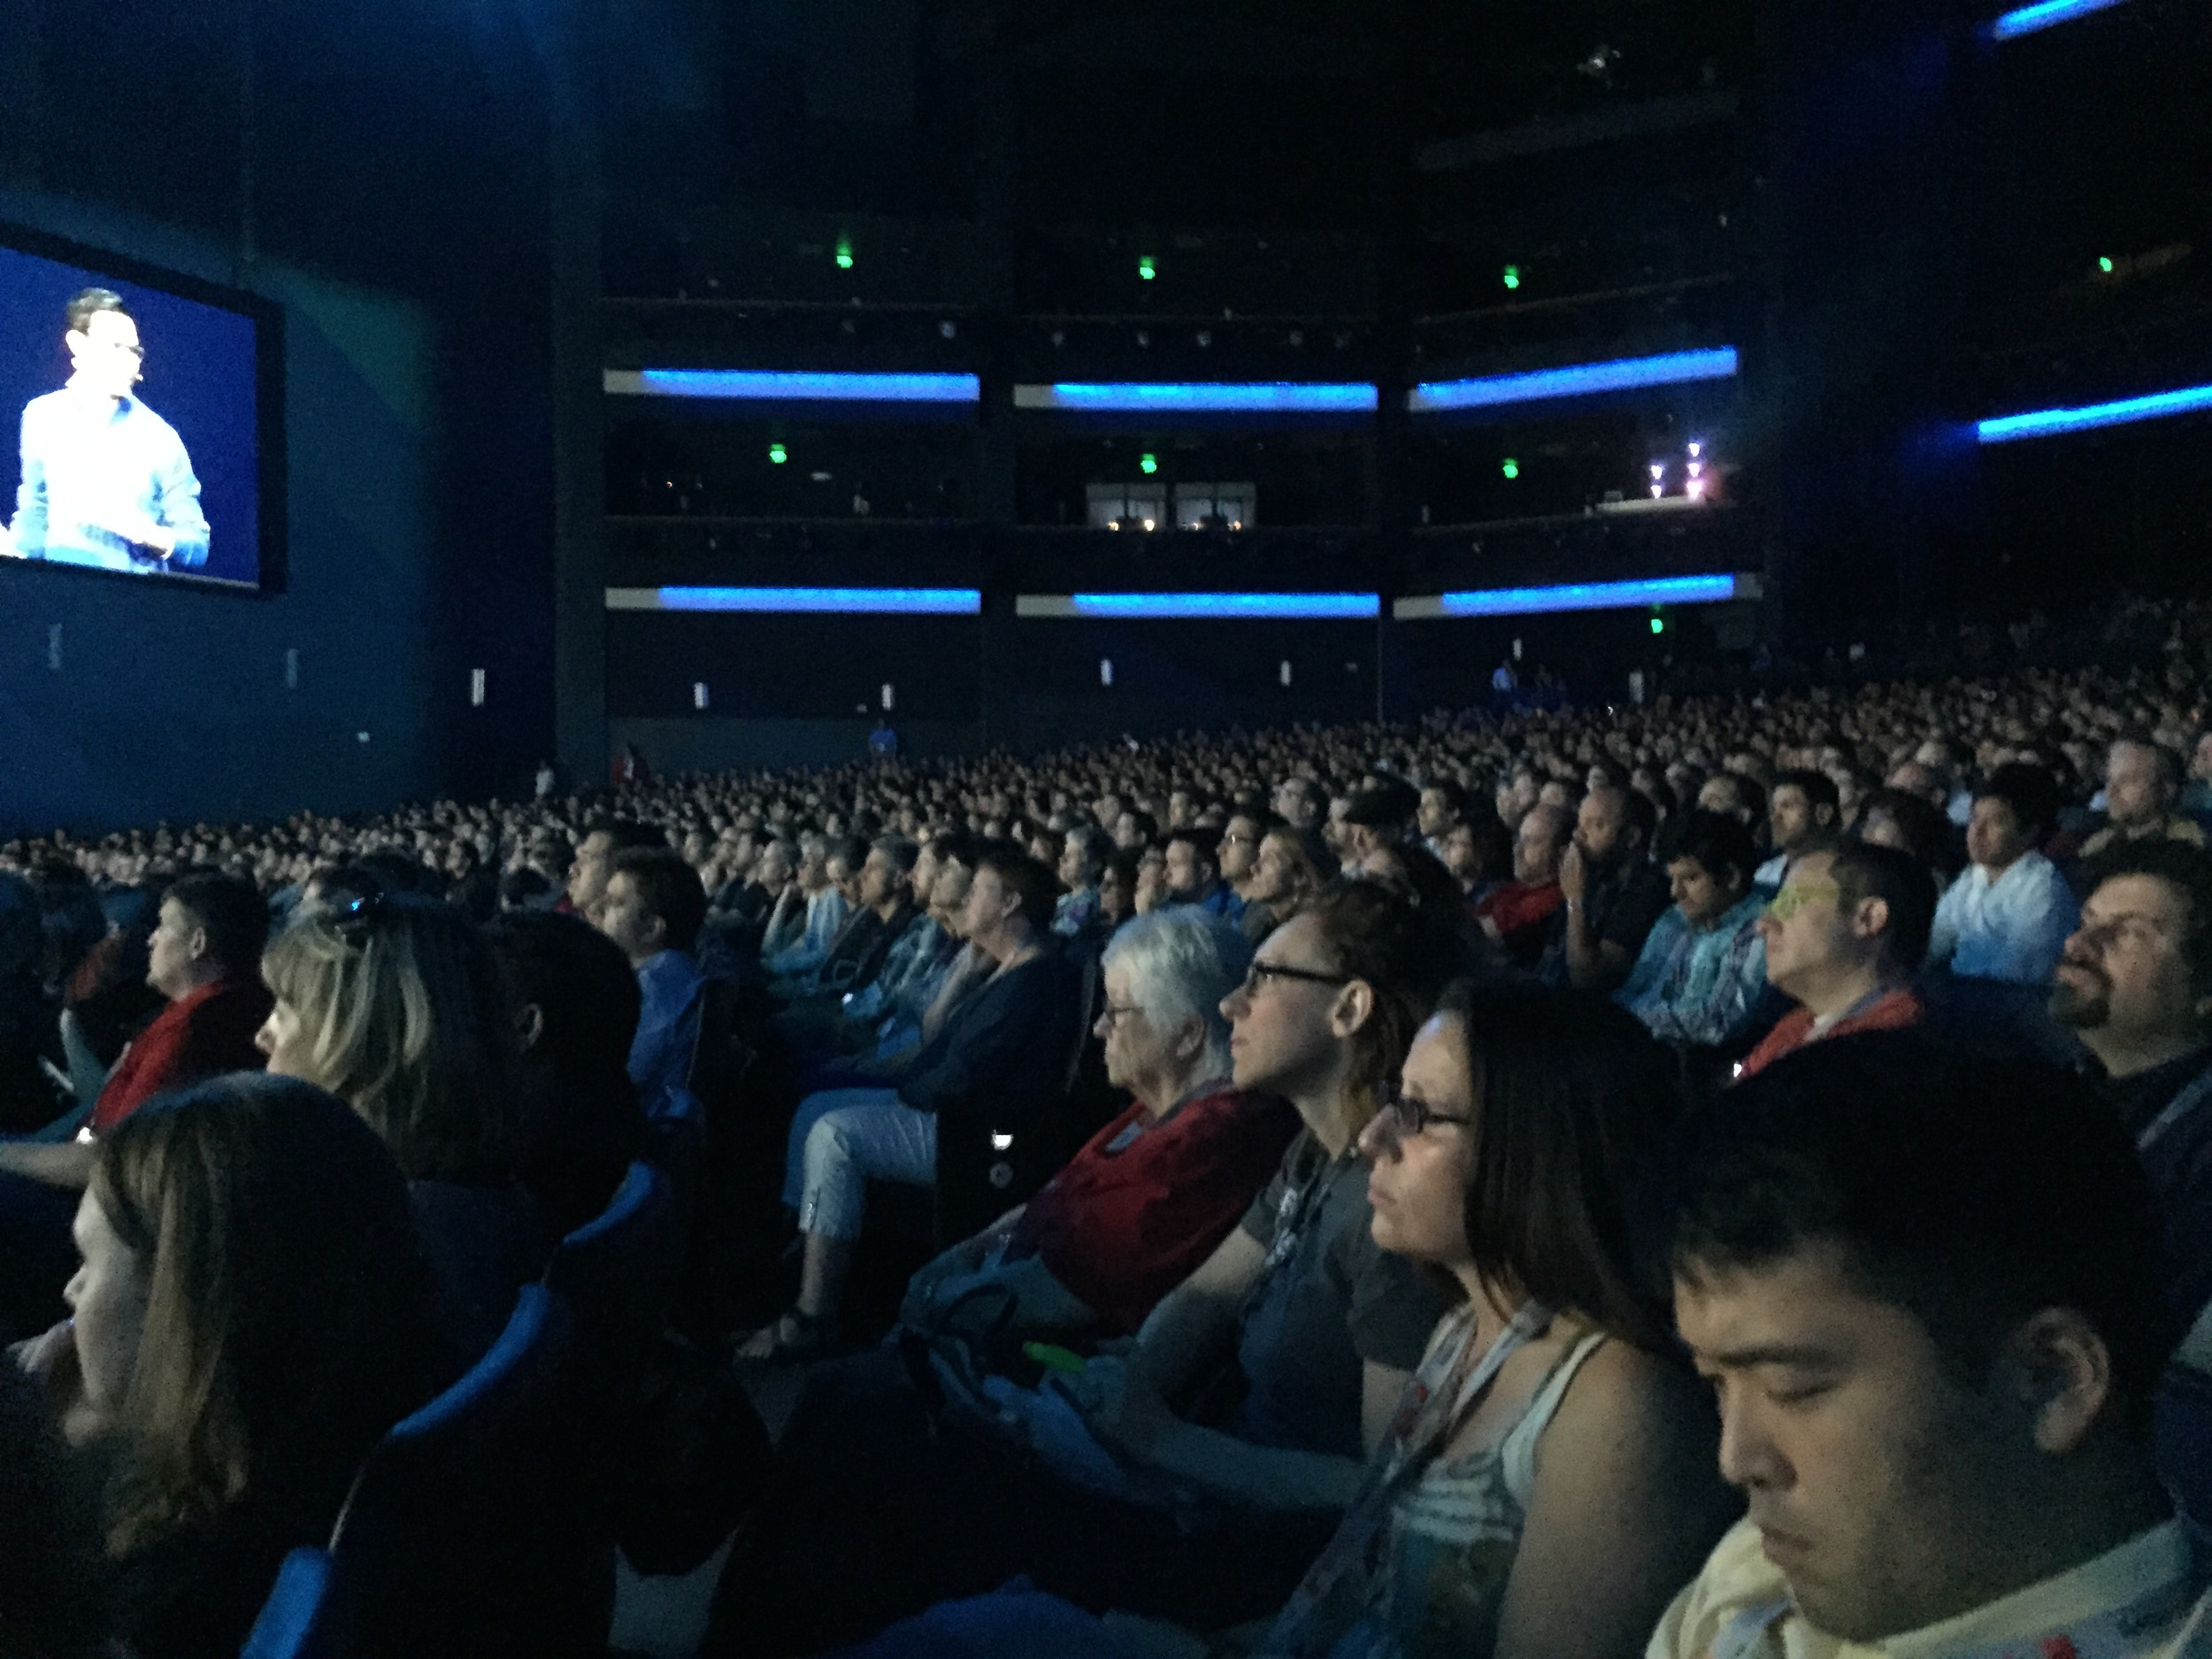 It was wild being at Adobe Max with the faithful - and seeing what Adobe is planning next.